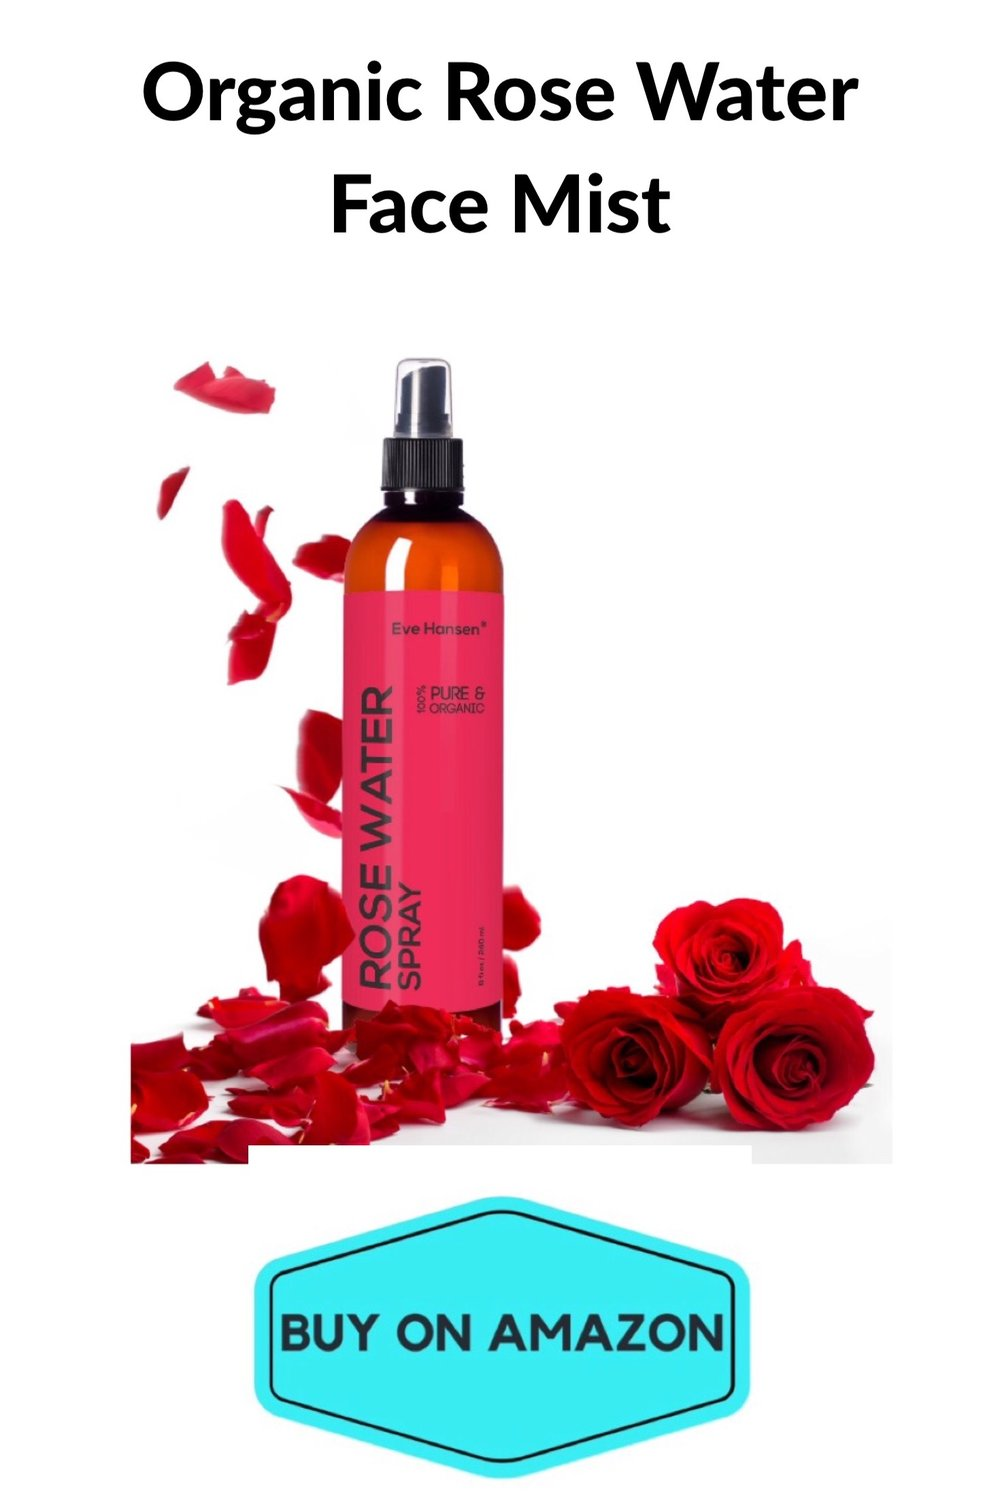 Organic Rose Water Face Mist